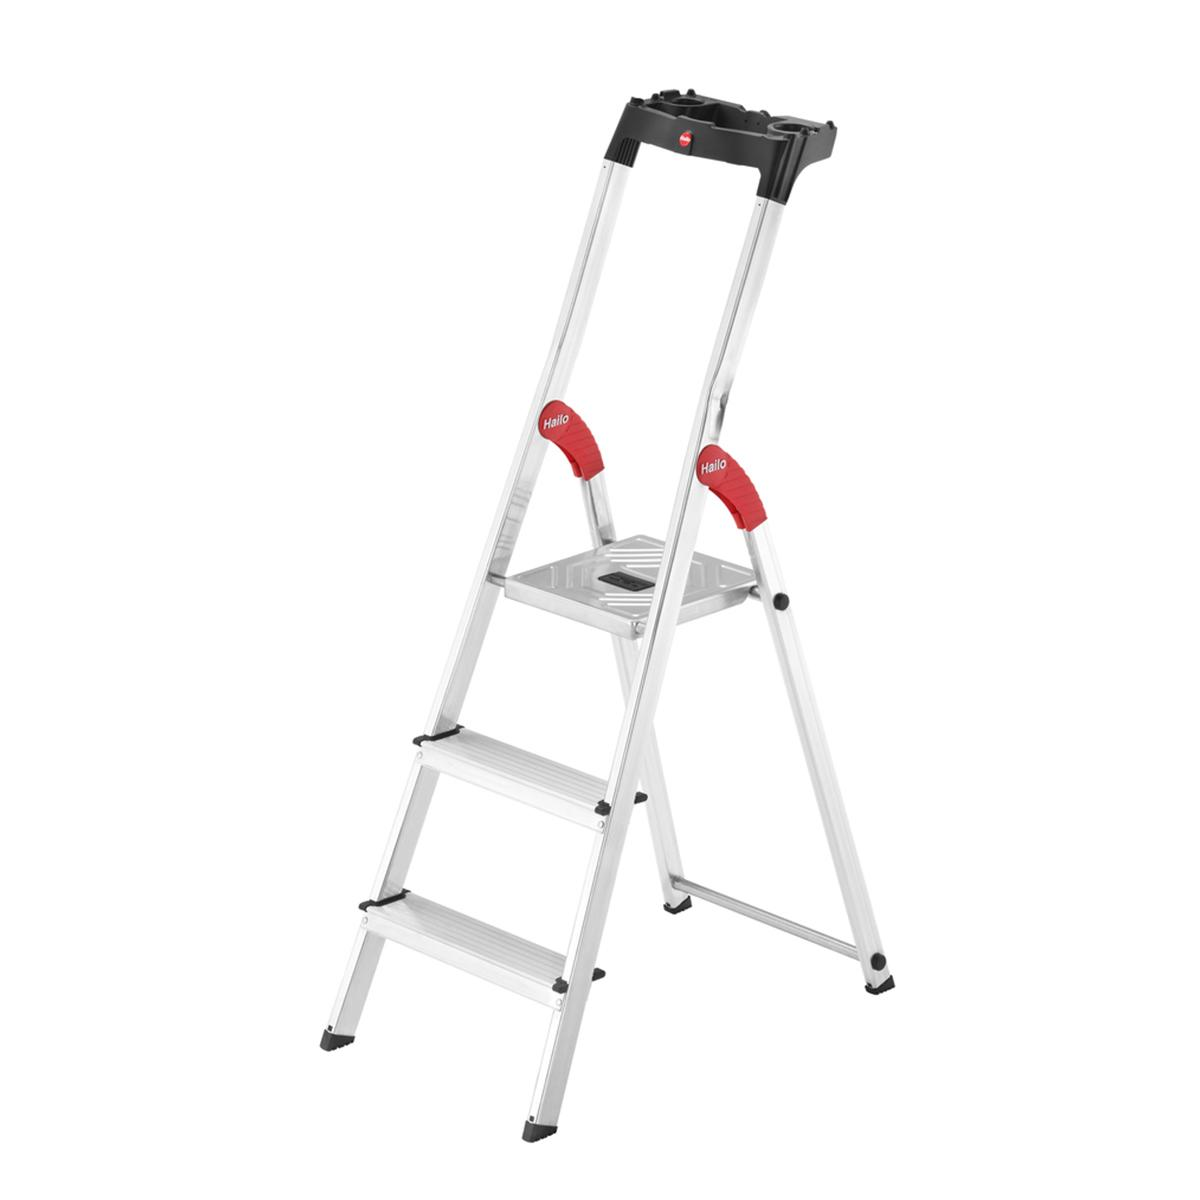 Hailo Household/Home/Steps Light Weight Stable/Steady/Sturdy 3/4/5/6/7/8 Steps Aluminium Safety Ladder/Ladders